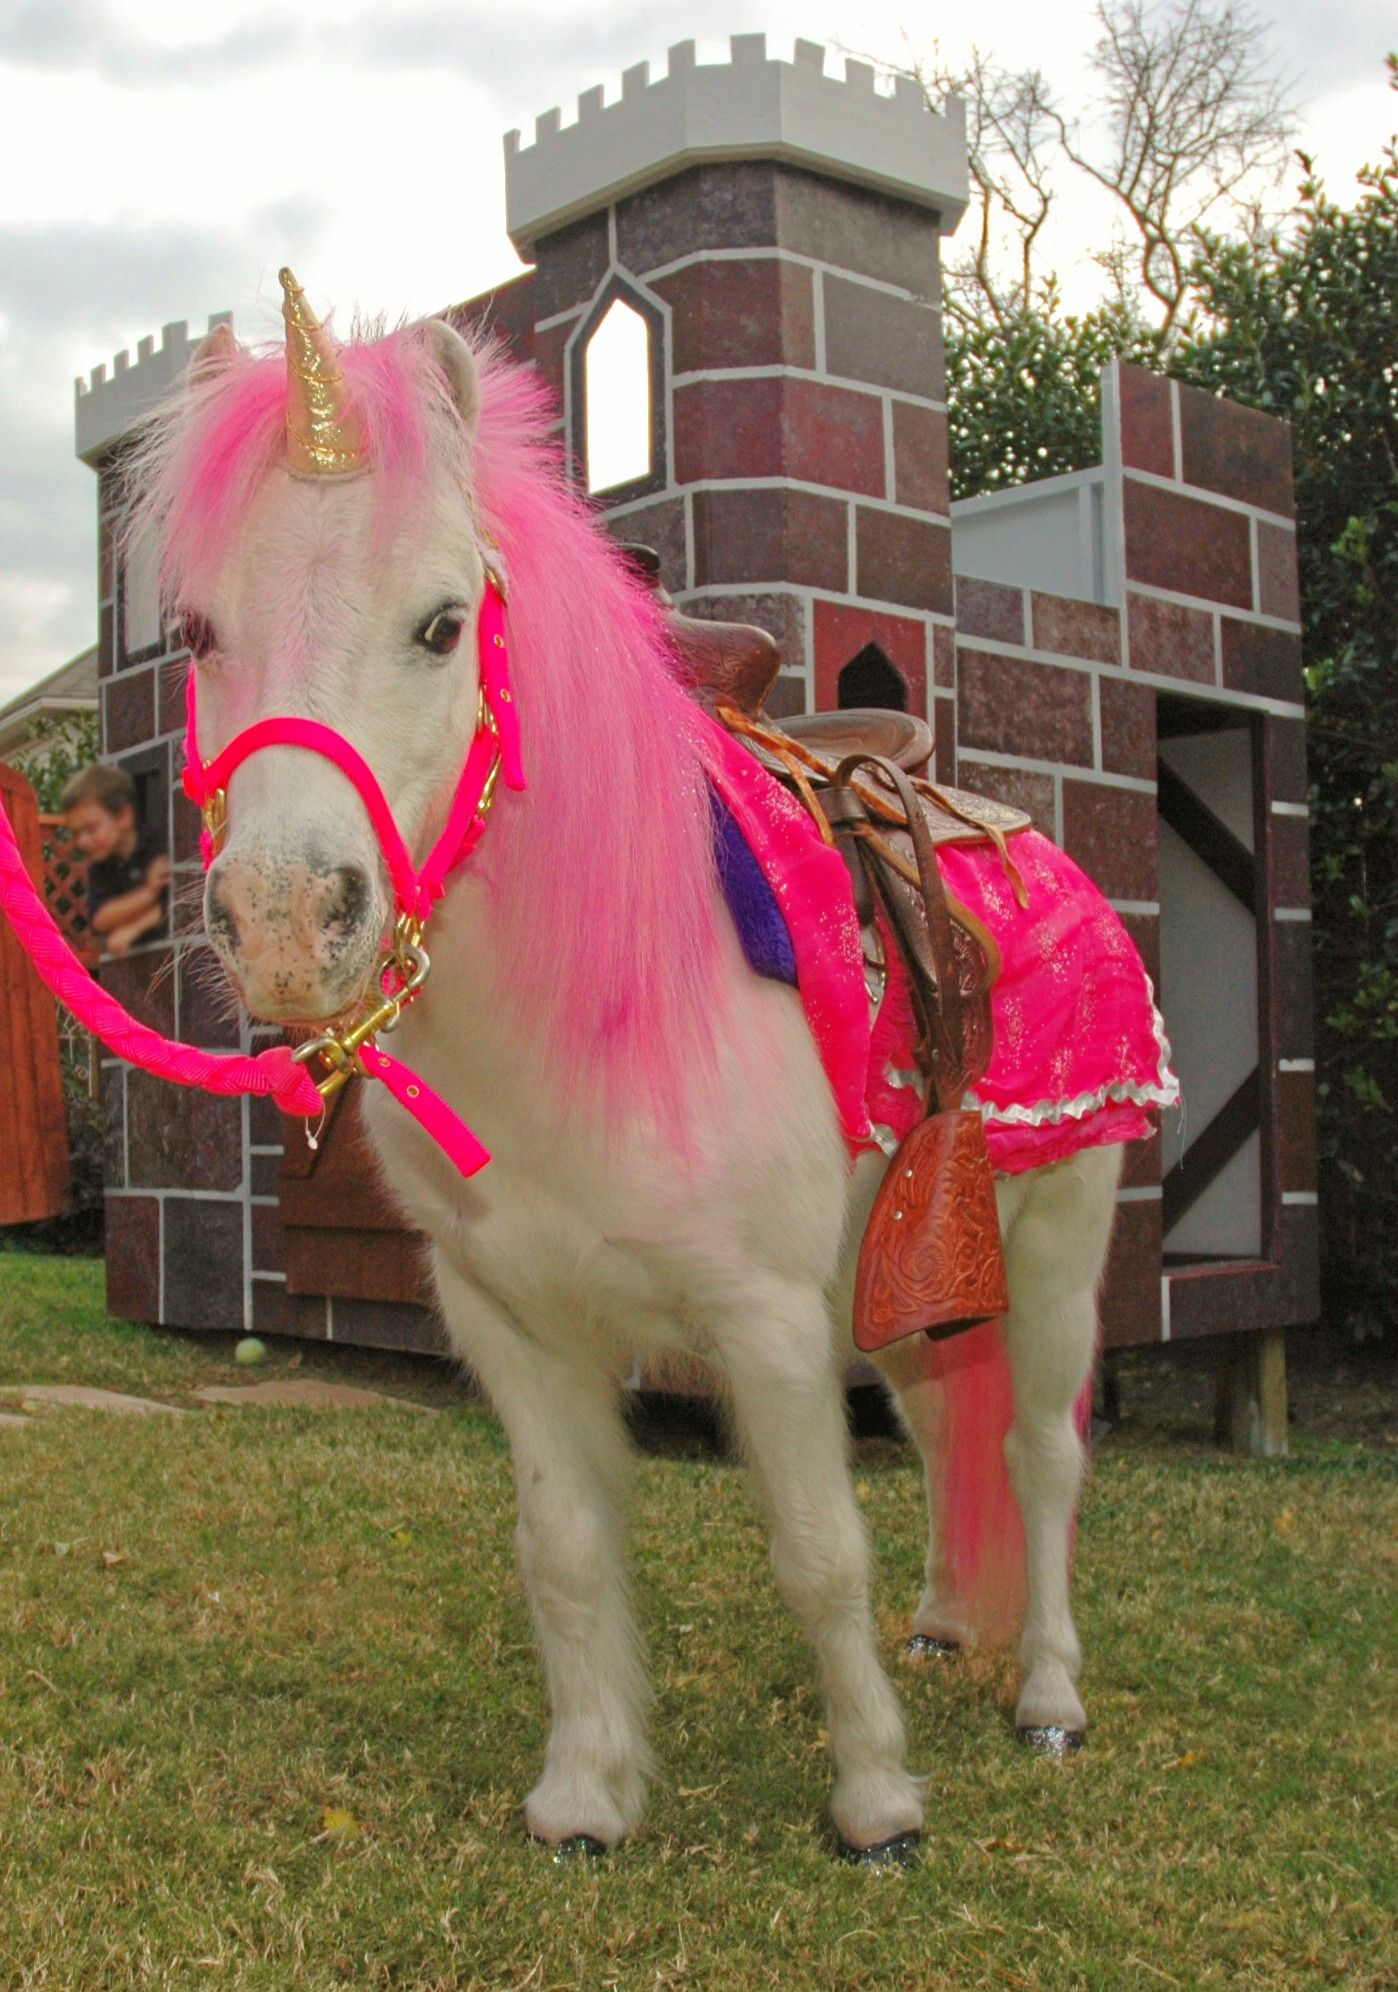 Horses Toys For Girls Birthdays : Future bday for grace pony rides petting zoo